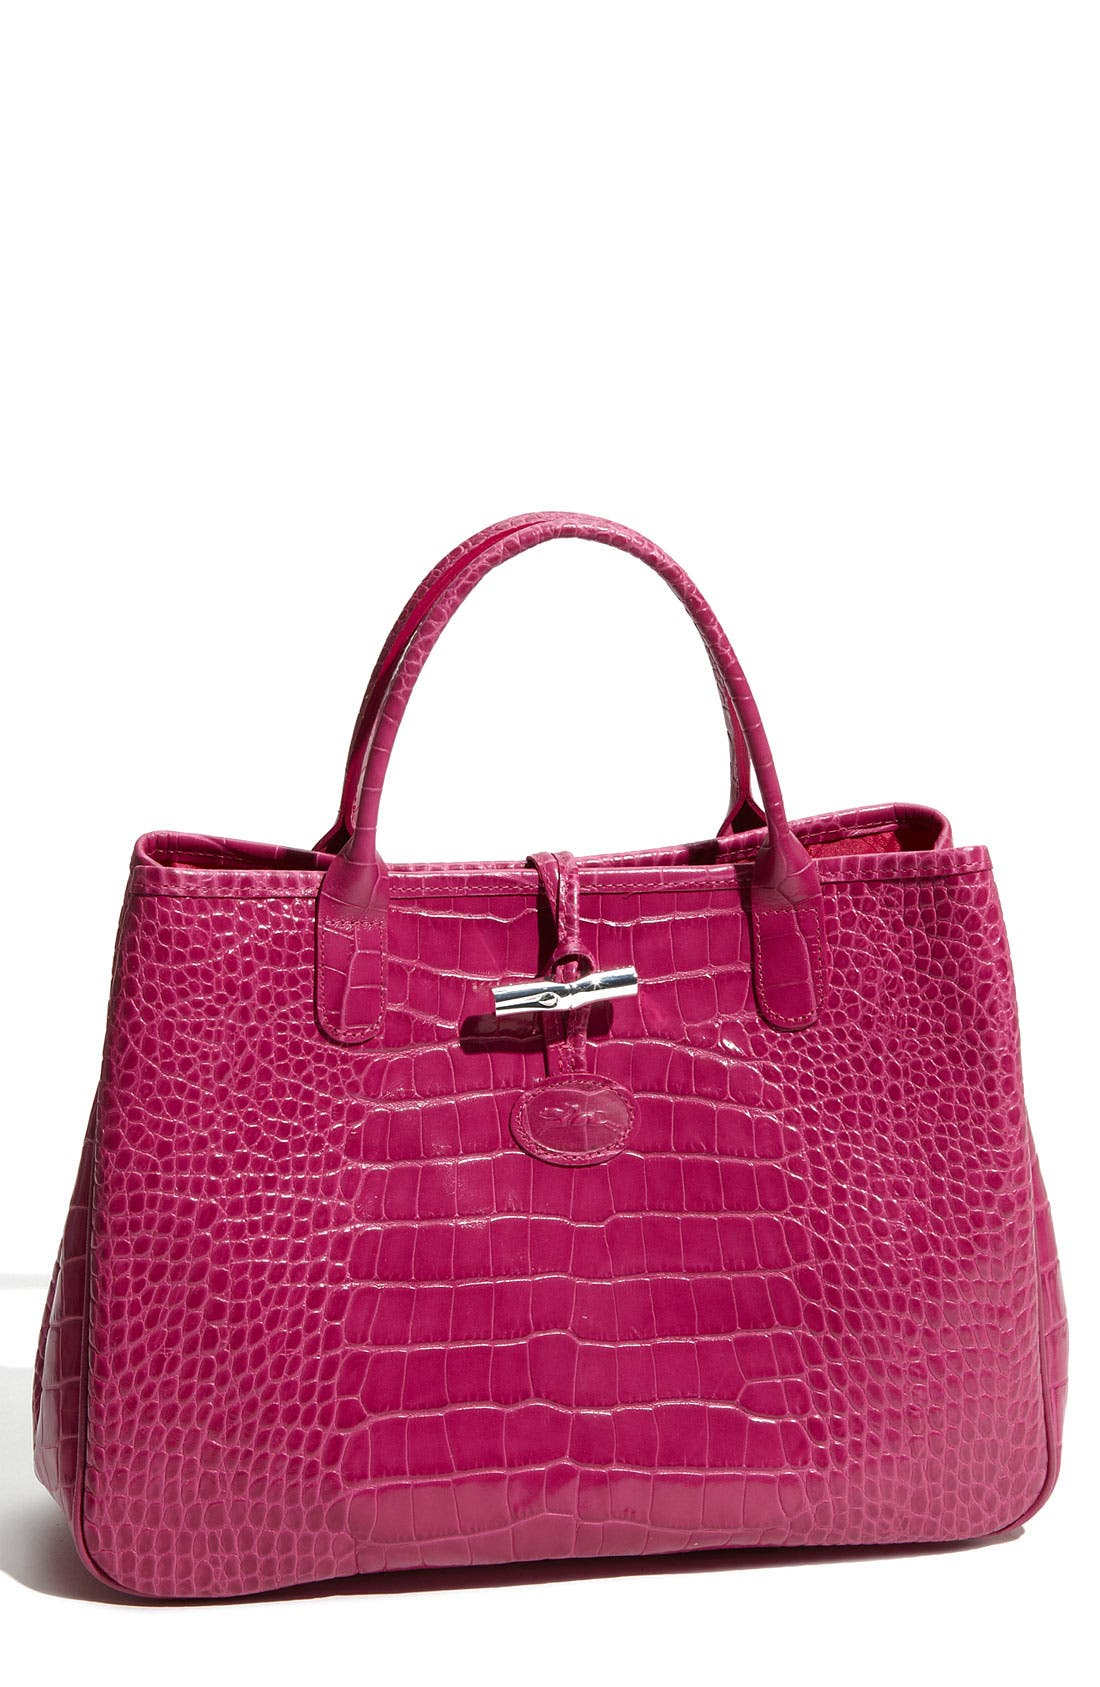 Alternate Image 1 Selected - Longchamp 'Roseau' Embossed Tote